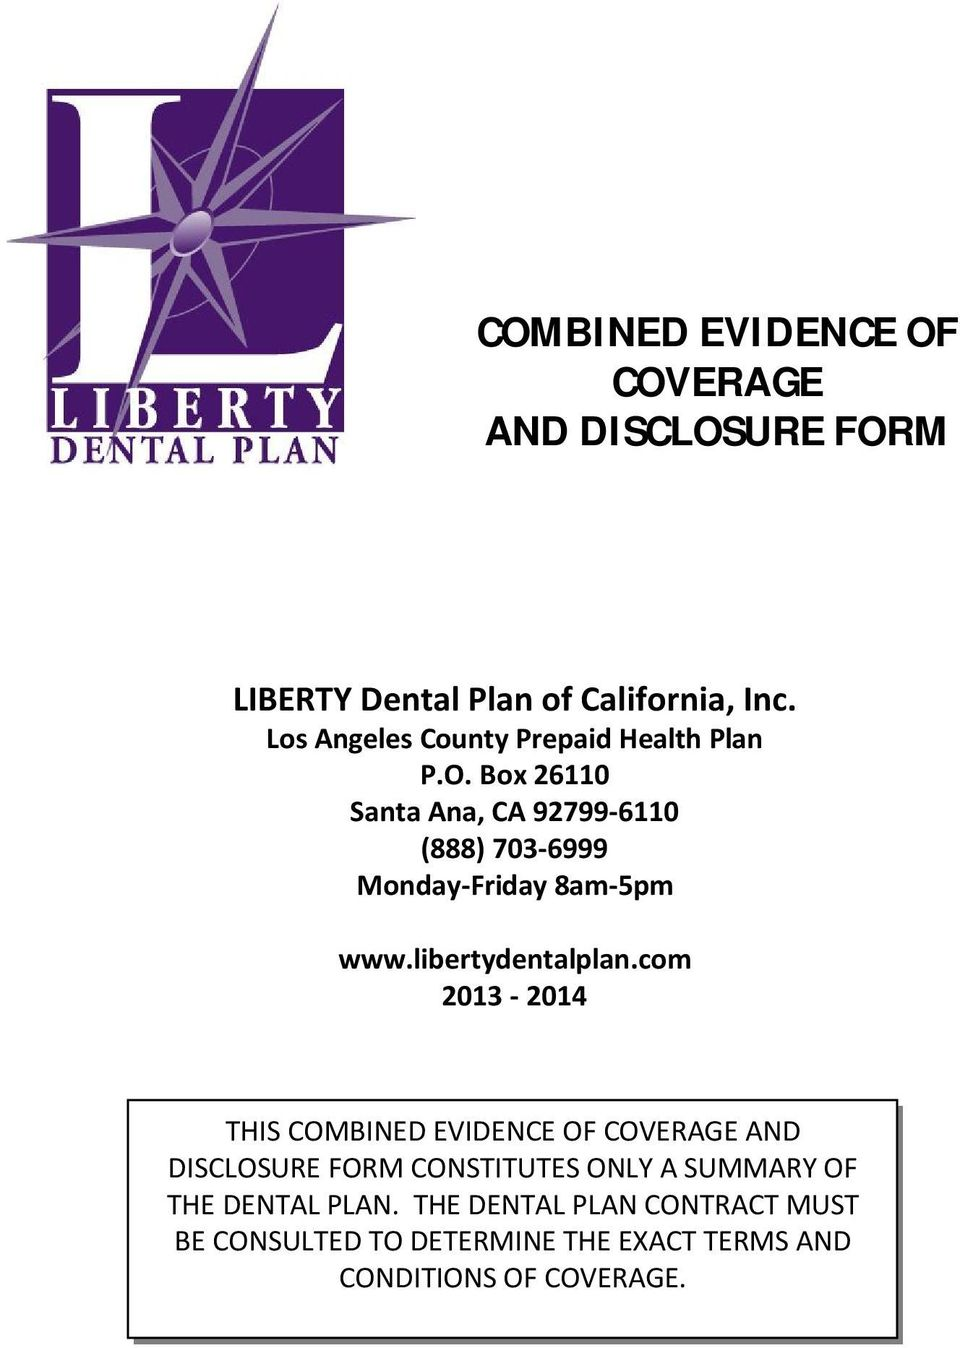 COMBINED EVIDENCE OF COVERAGE AND DISCLOSURE FORM - PDF